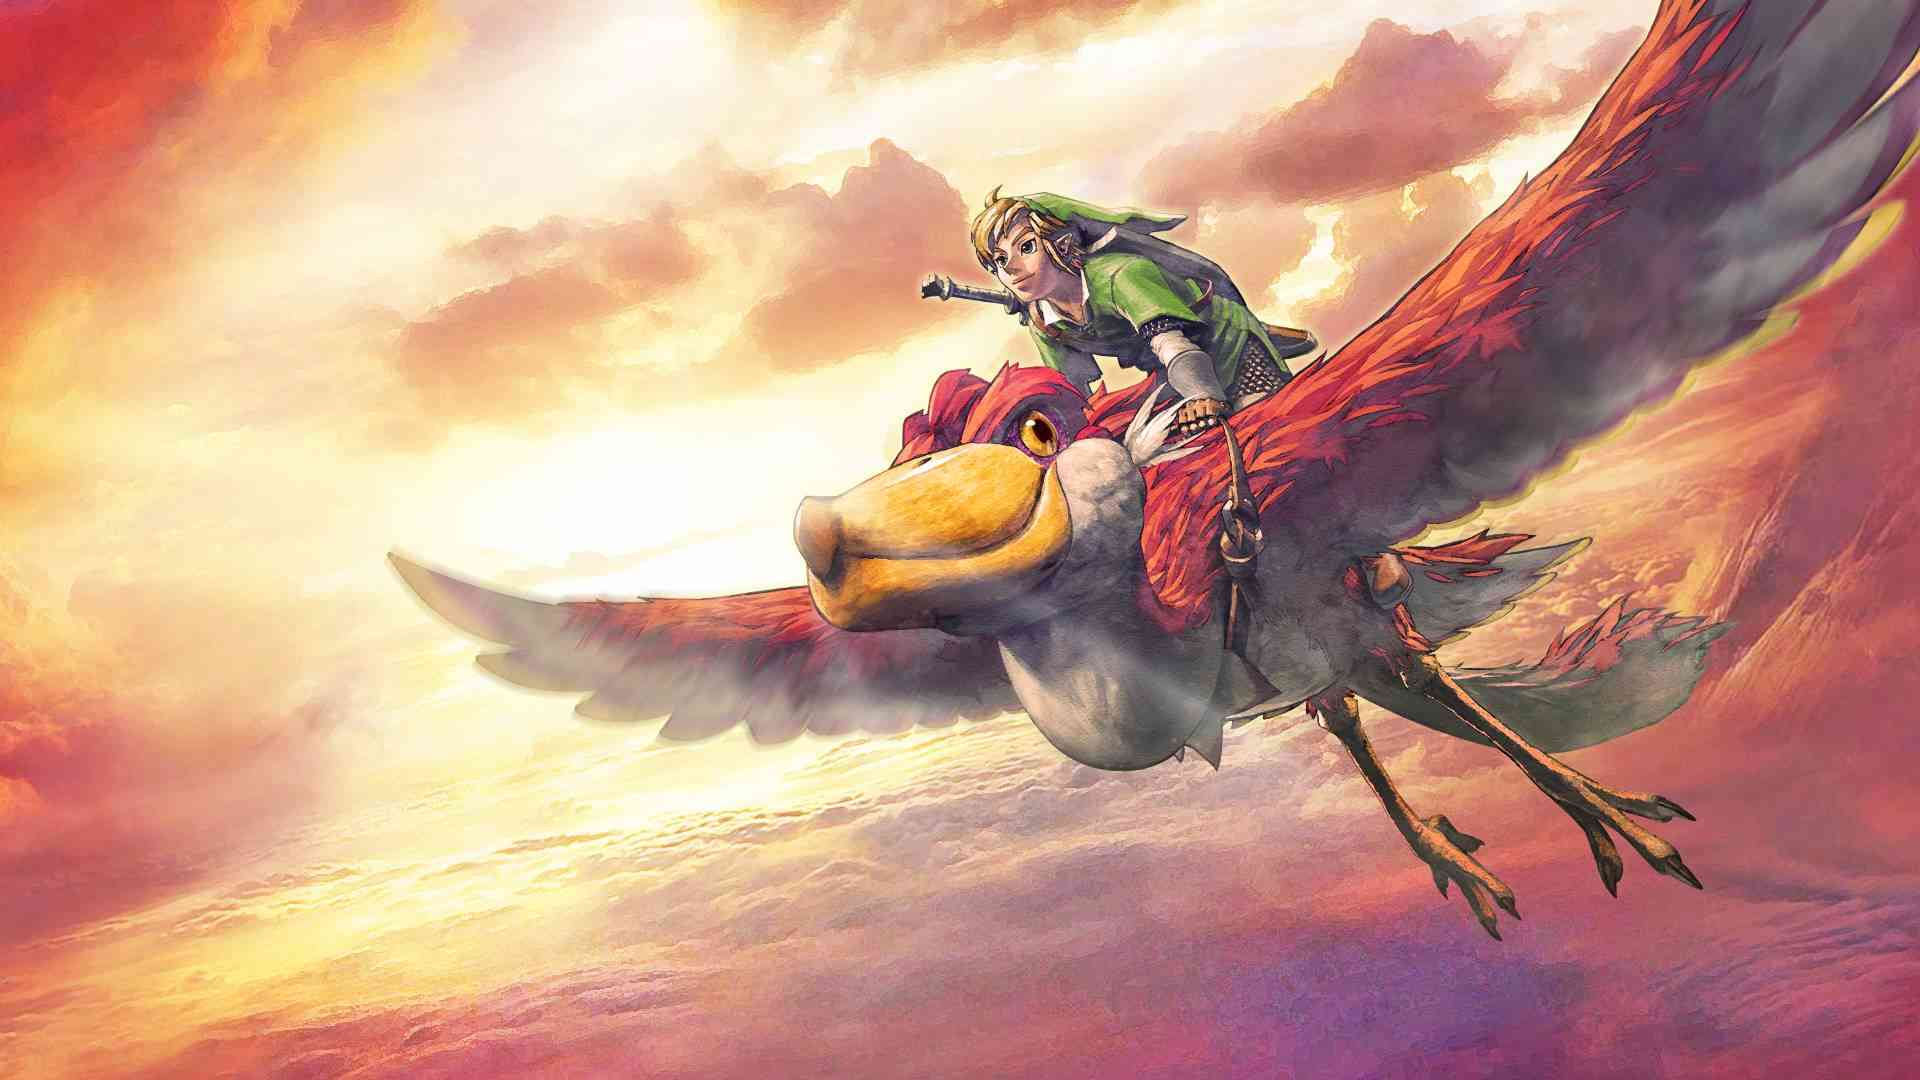 Арт к игре The Legend of Zelda: Skyward Sword